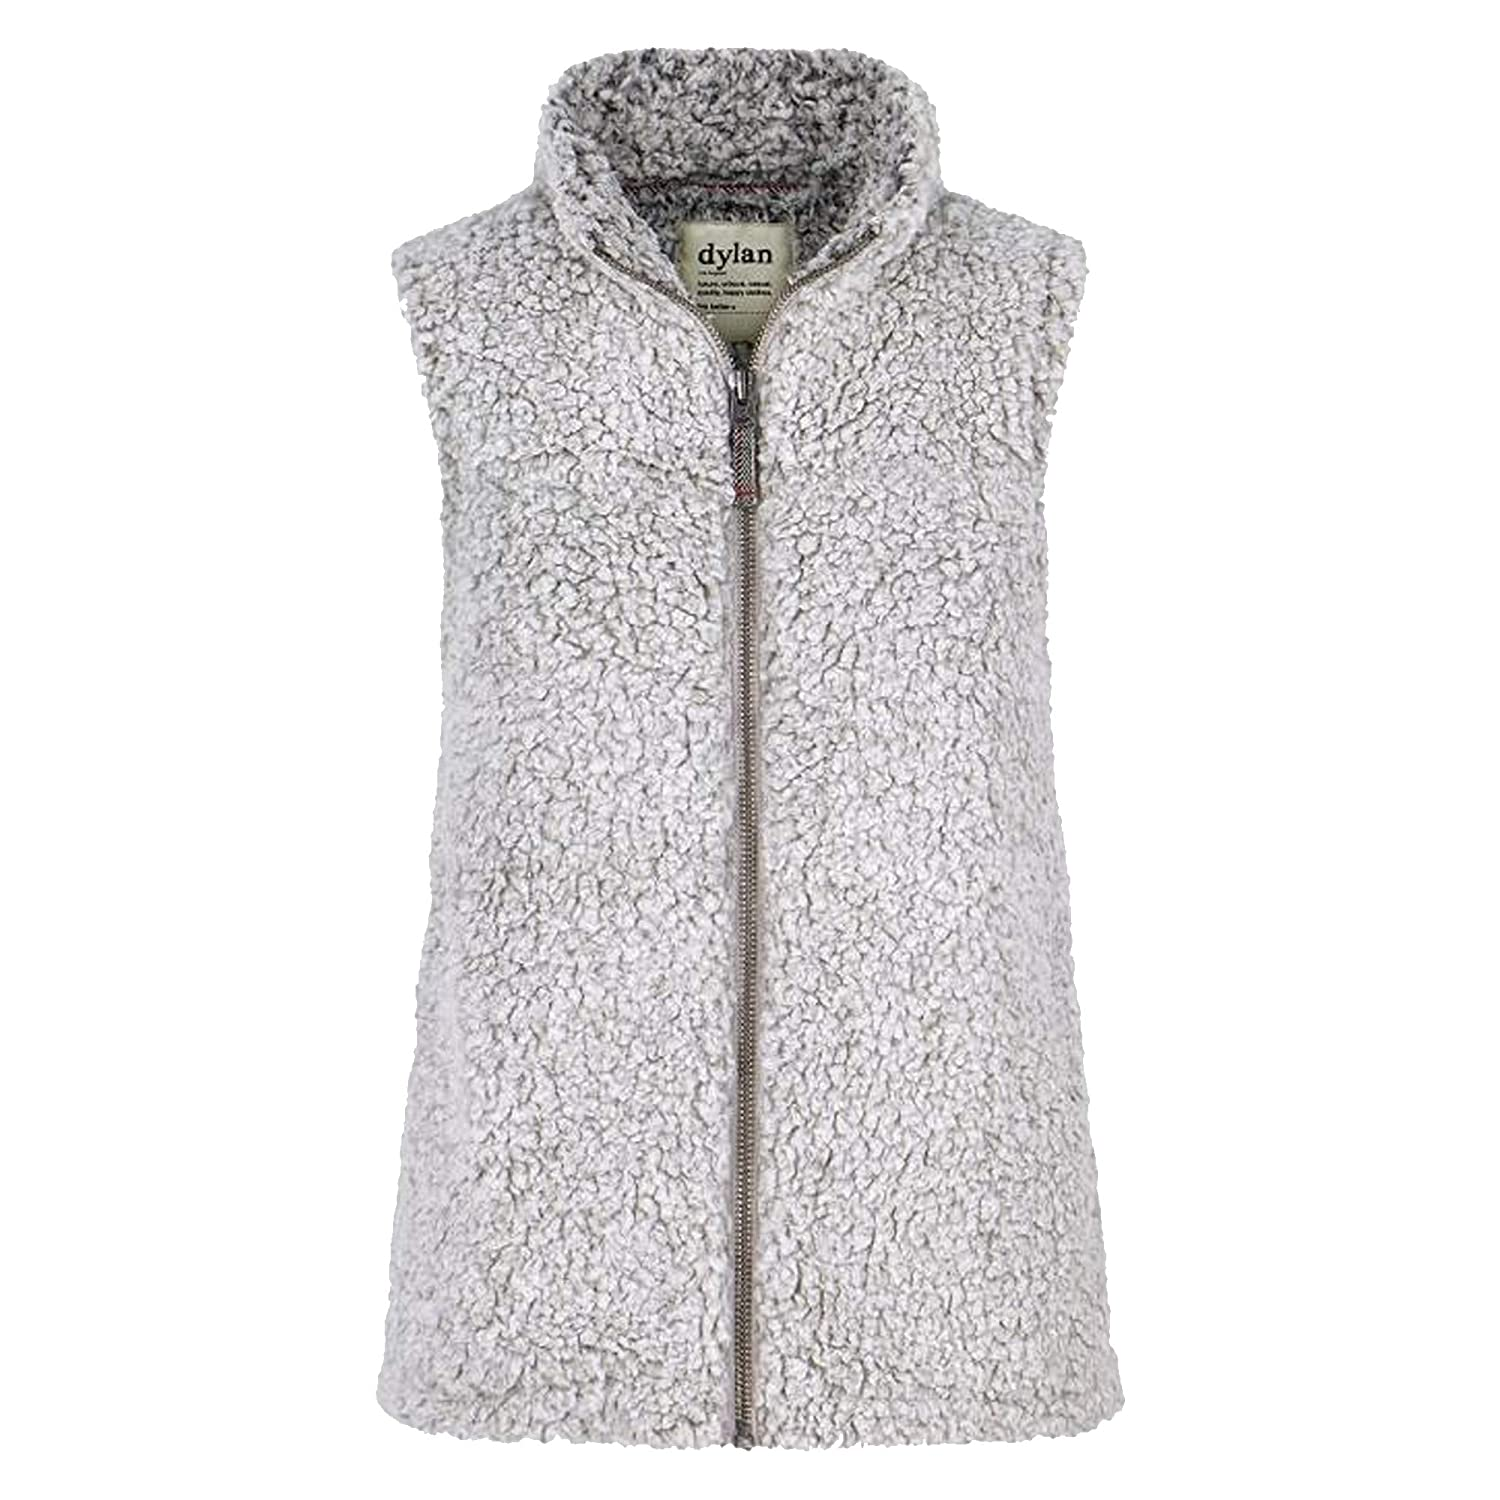 Putty Dylan Women's Frosty Tipped Pile Stadium Vest